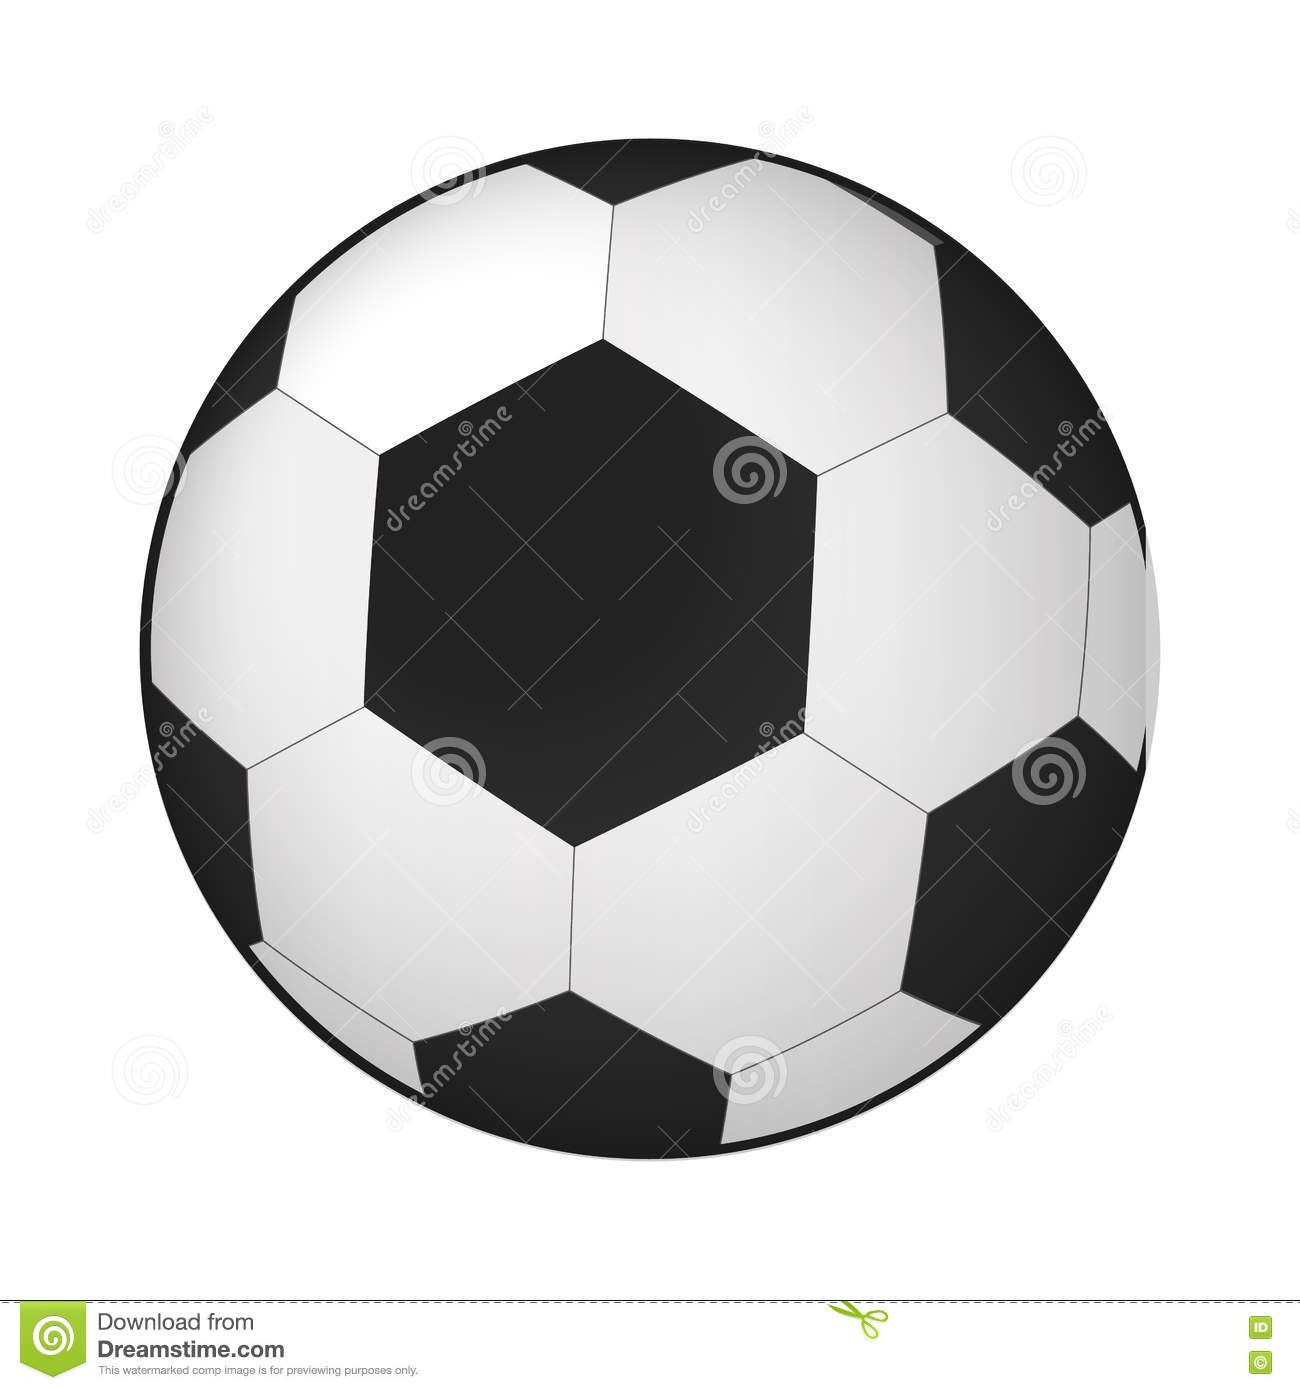 Soccer Ball Isometric 3d Icon Stock Vector - Illustration of graphic ... f2a69fc4f1acd